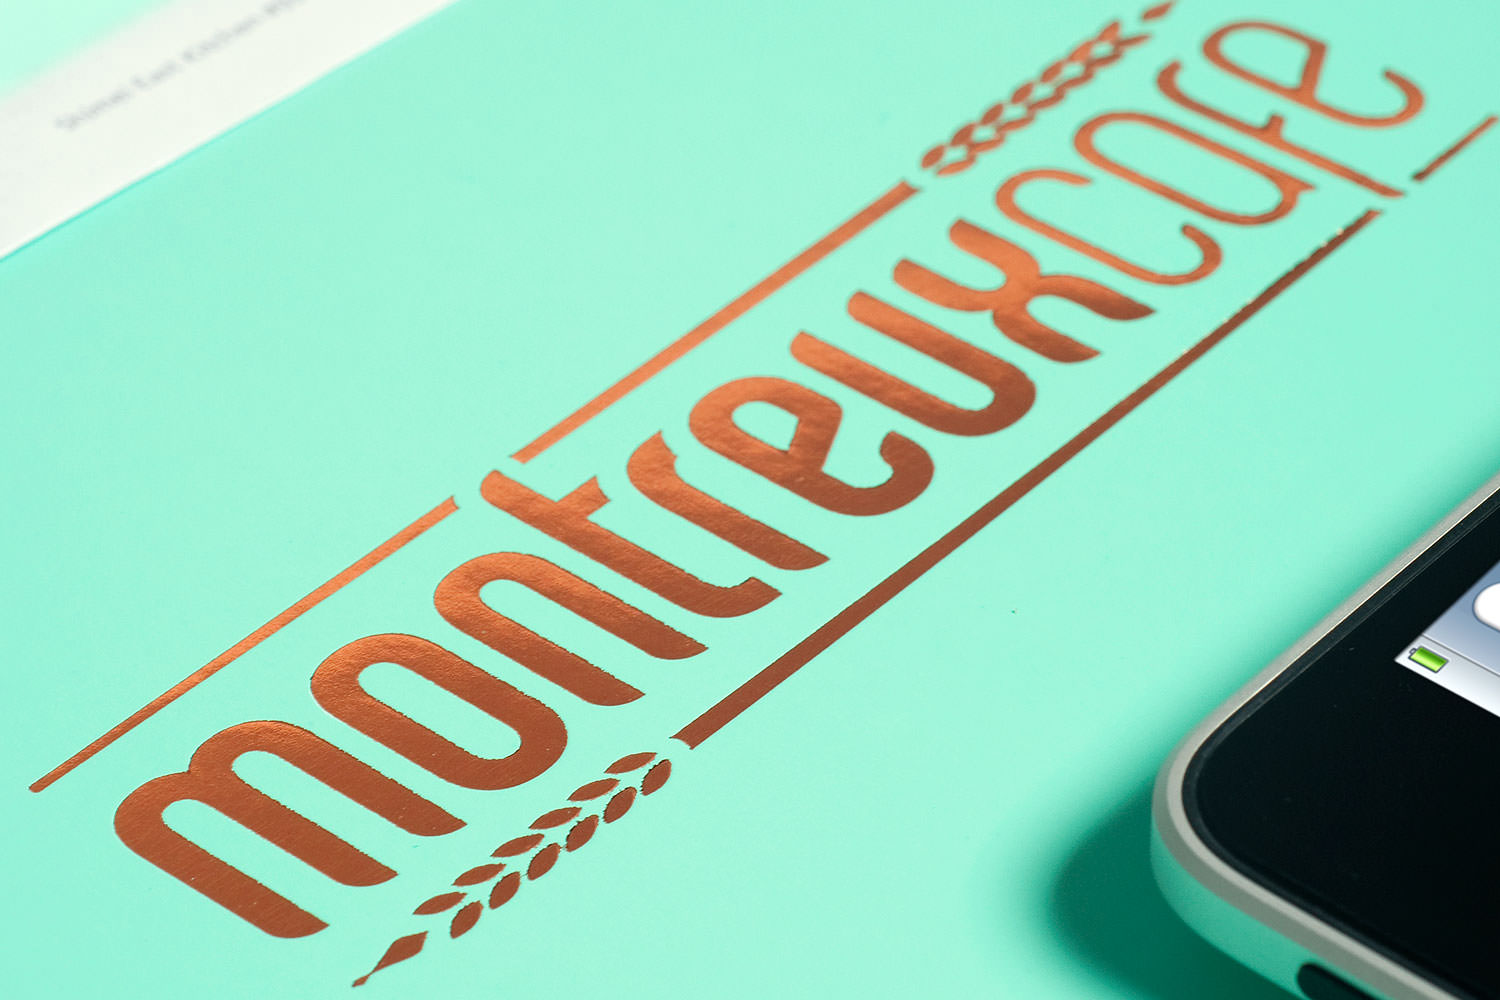 Montreux Café SG branding identity design - Foil-stamped logo on packaging.